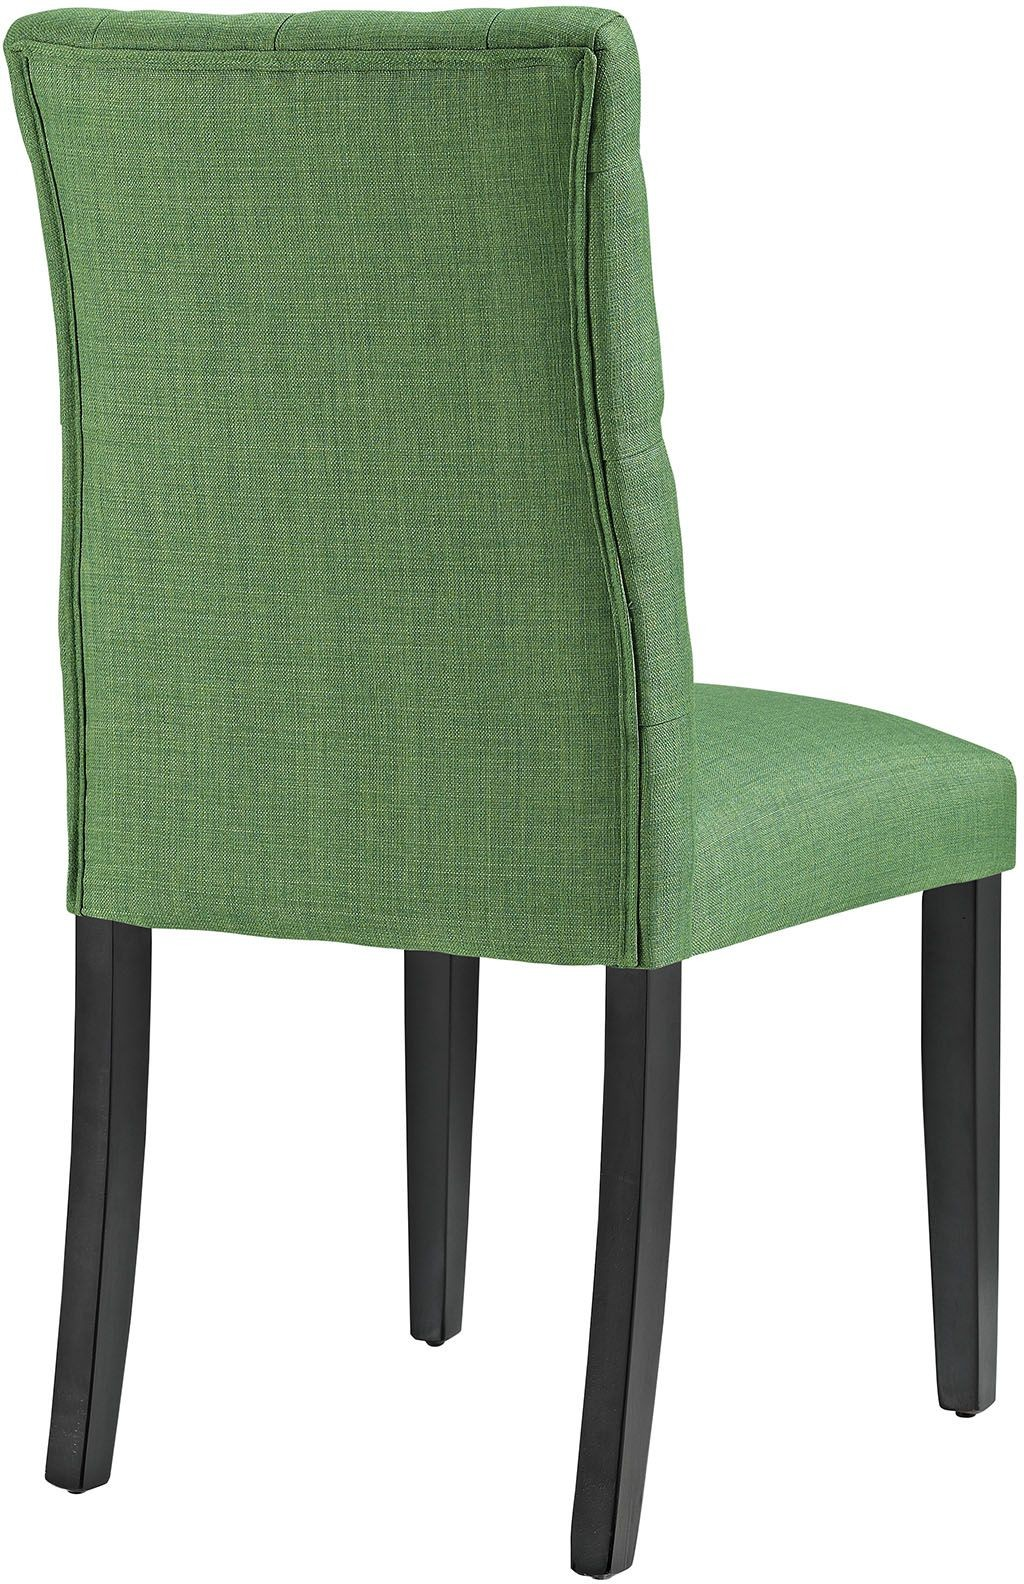 green upholstered dining chairs child adirondack chair plastic duchess eei 2231 grn